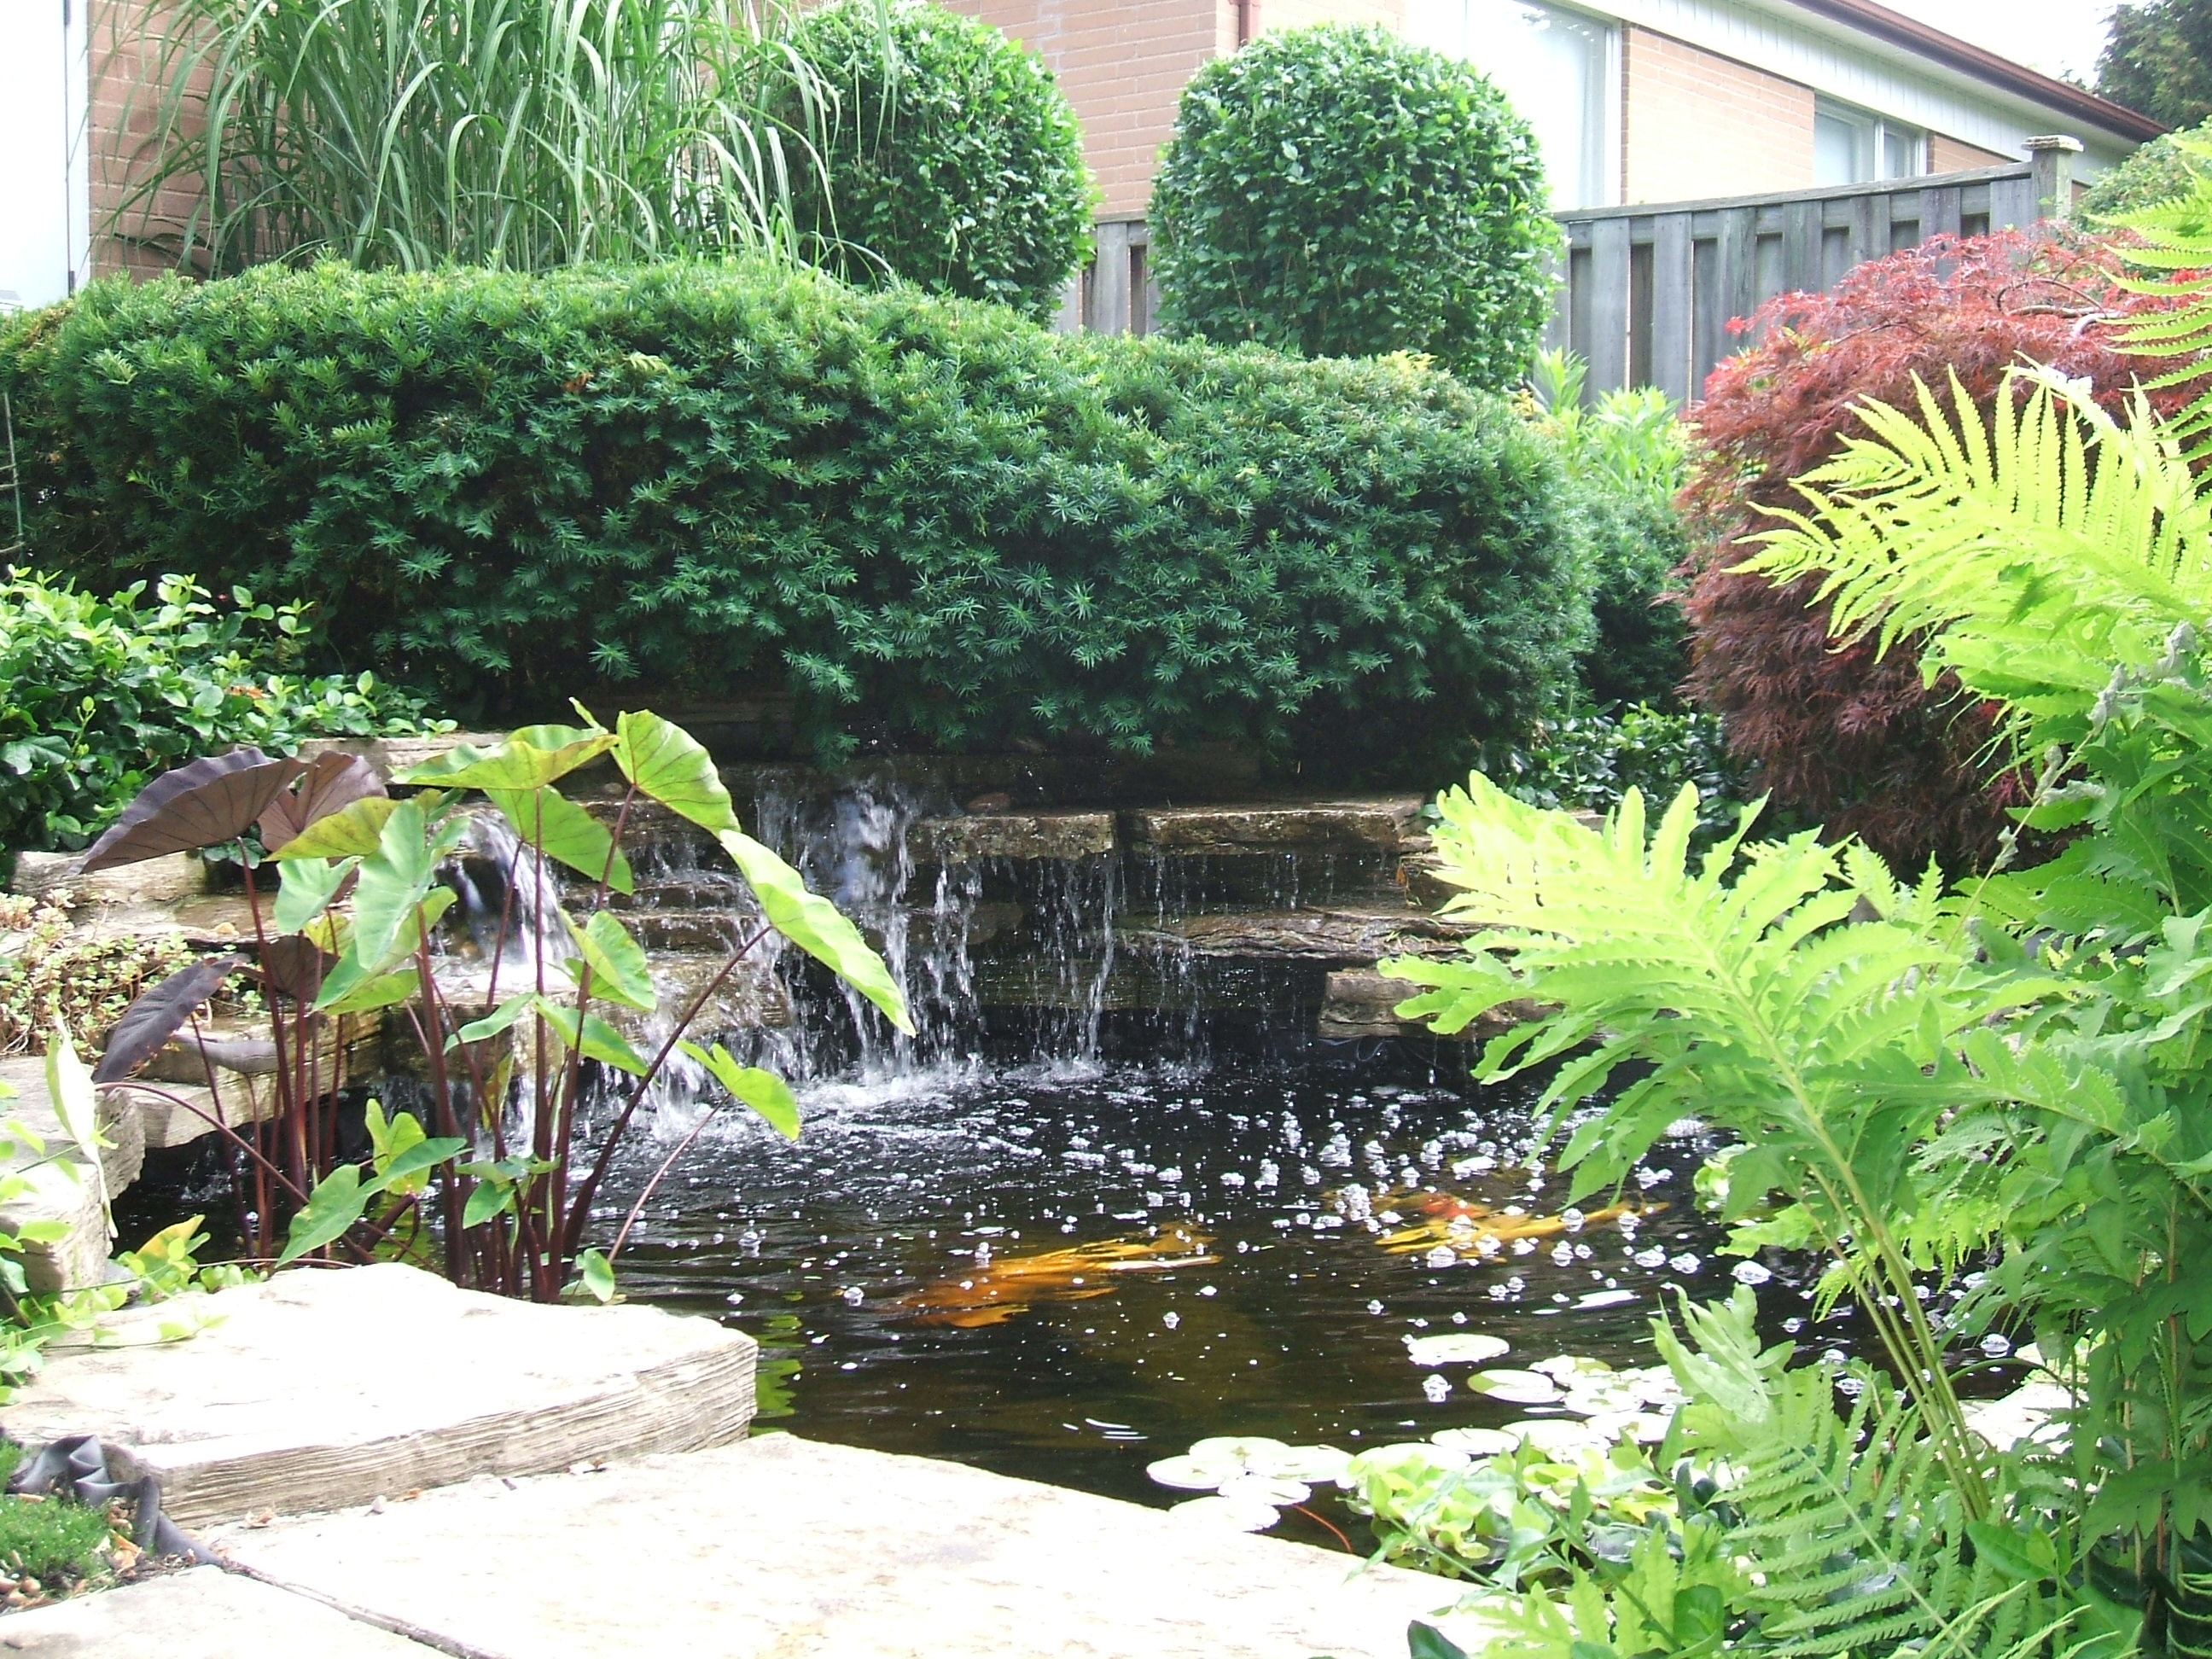 Best ideas about Backyard Koi Pond . Save or Pin A Safe Simple Way to Prepare your Backyard Pond Koi and Now.